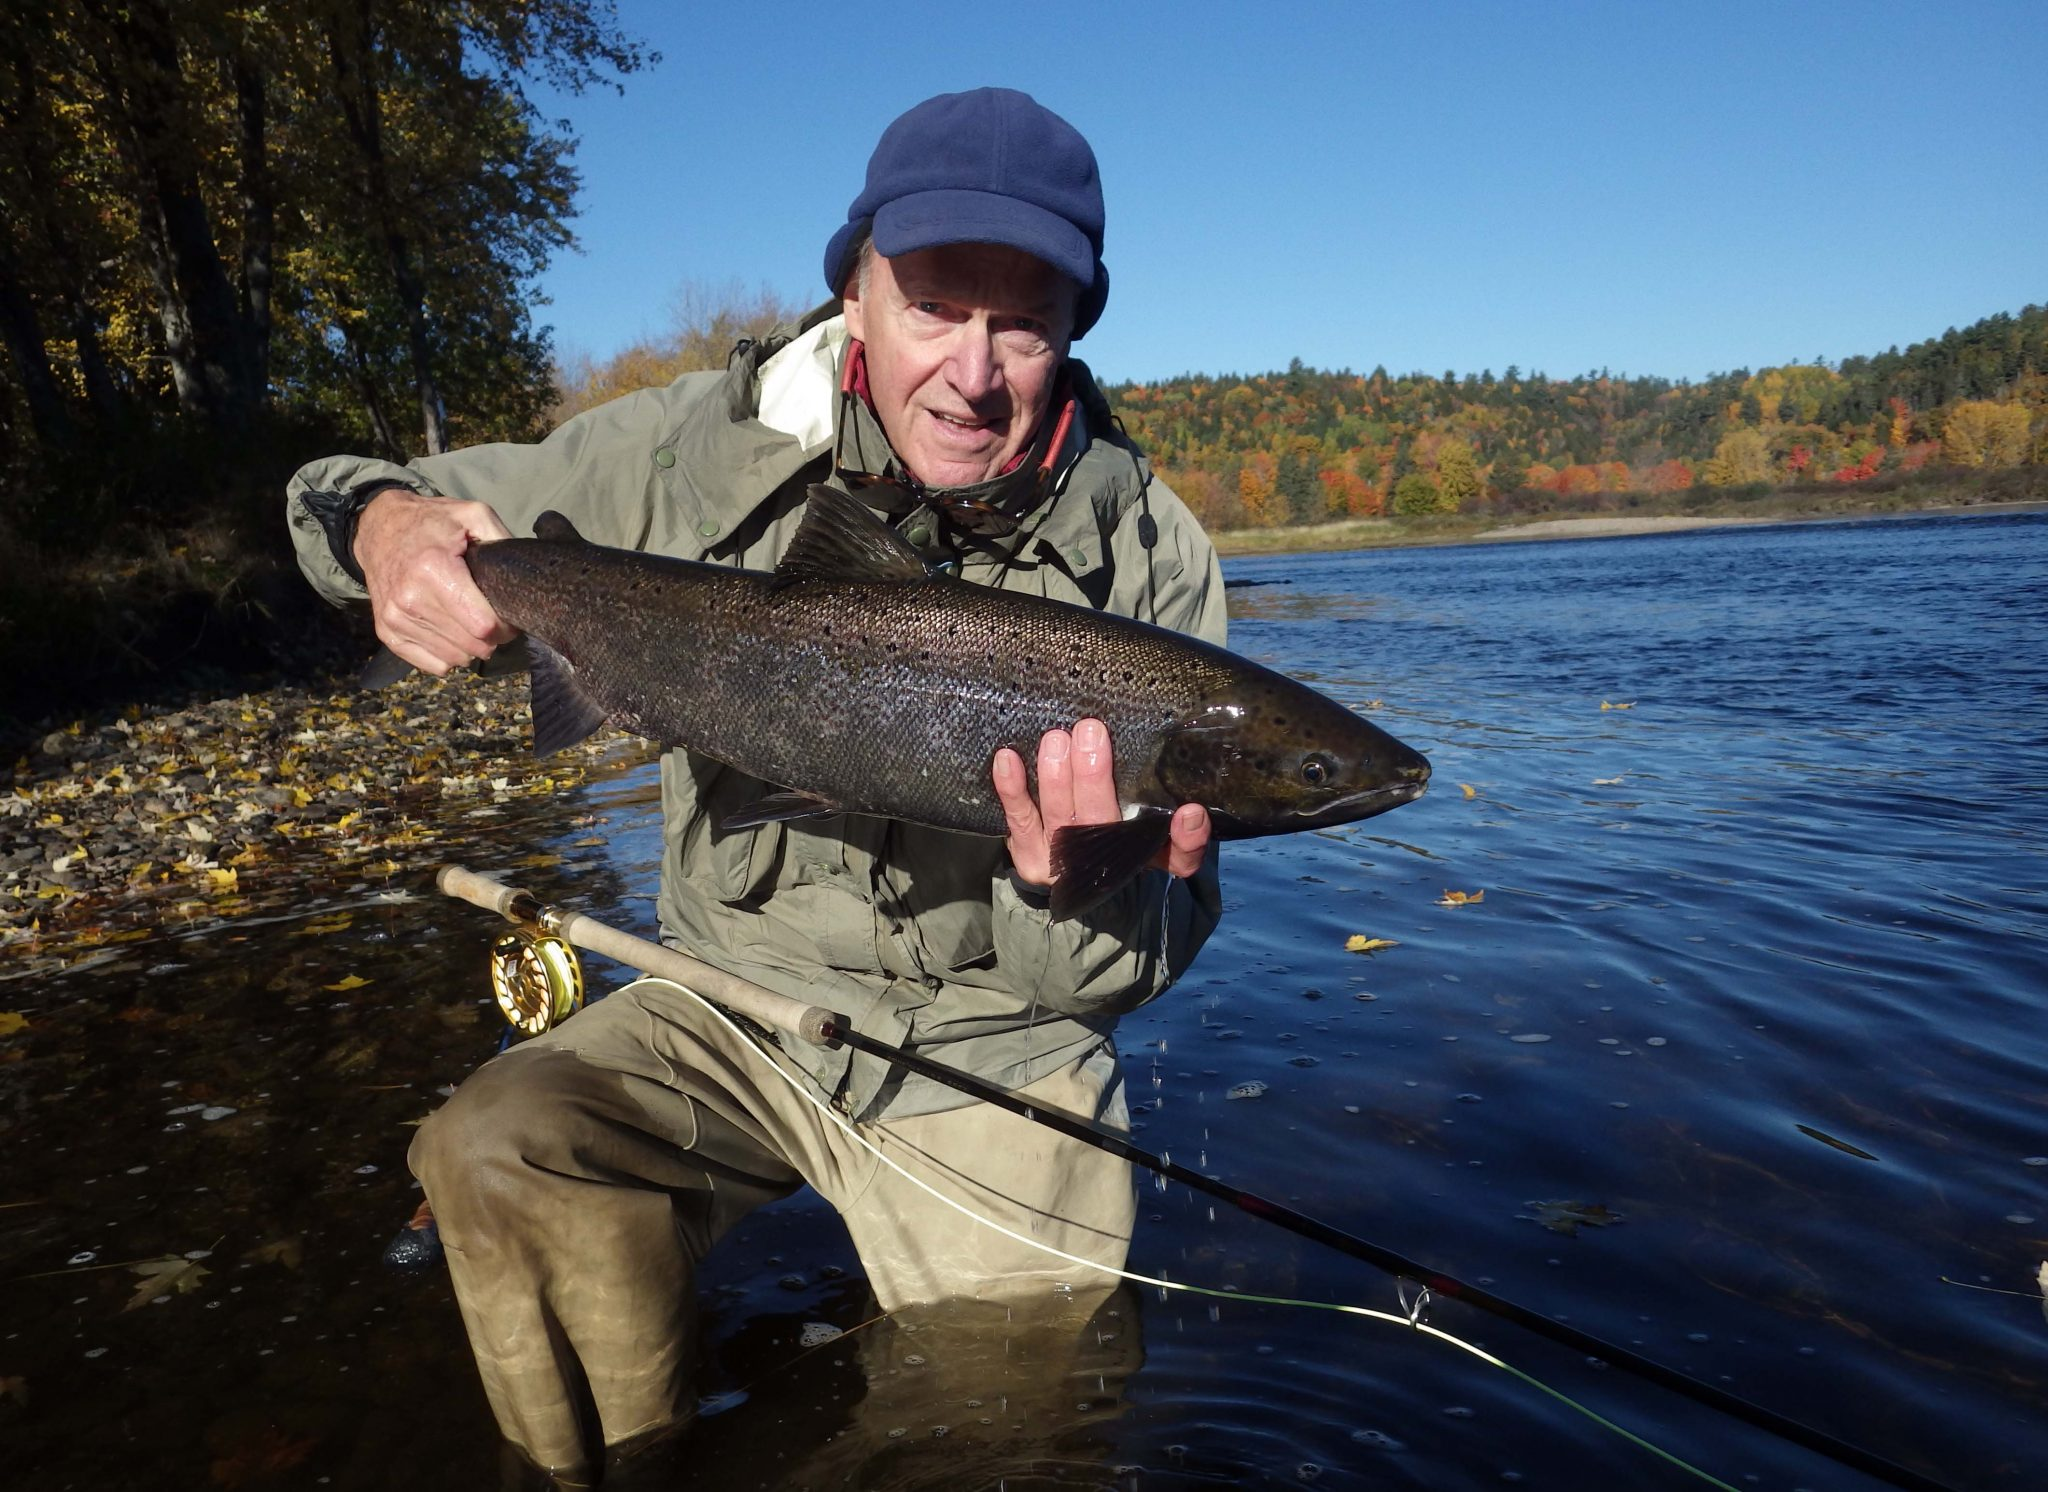 Wilson s miramichi report for oct 14th for Wilson river fishing report